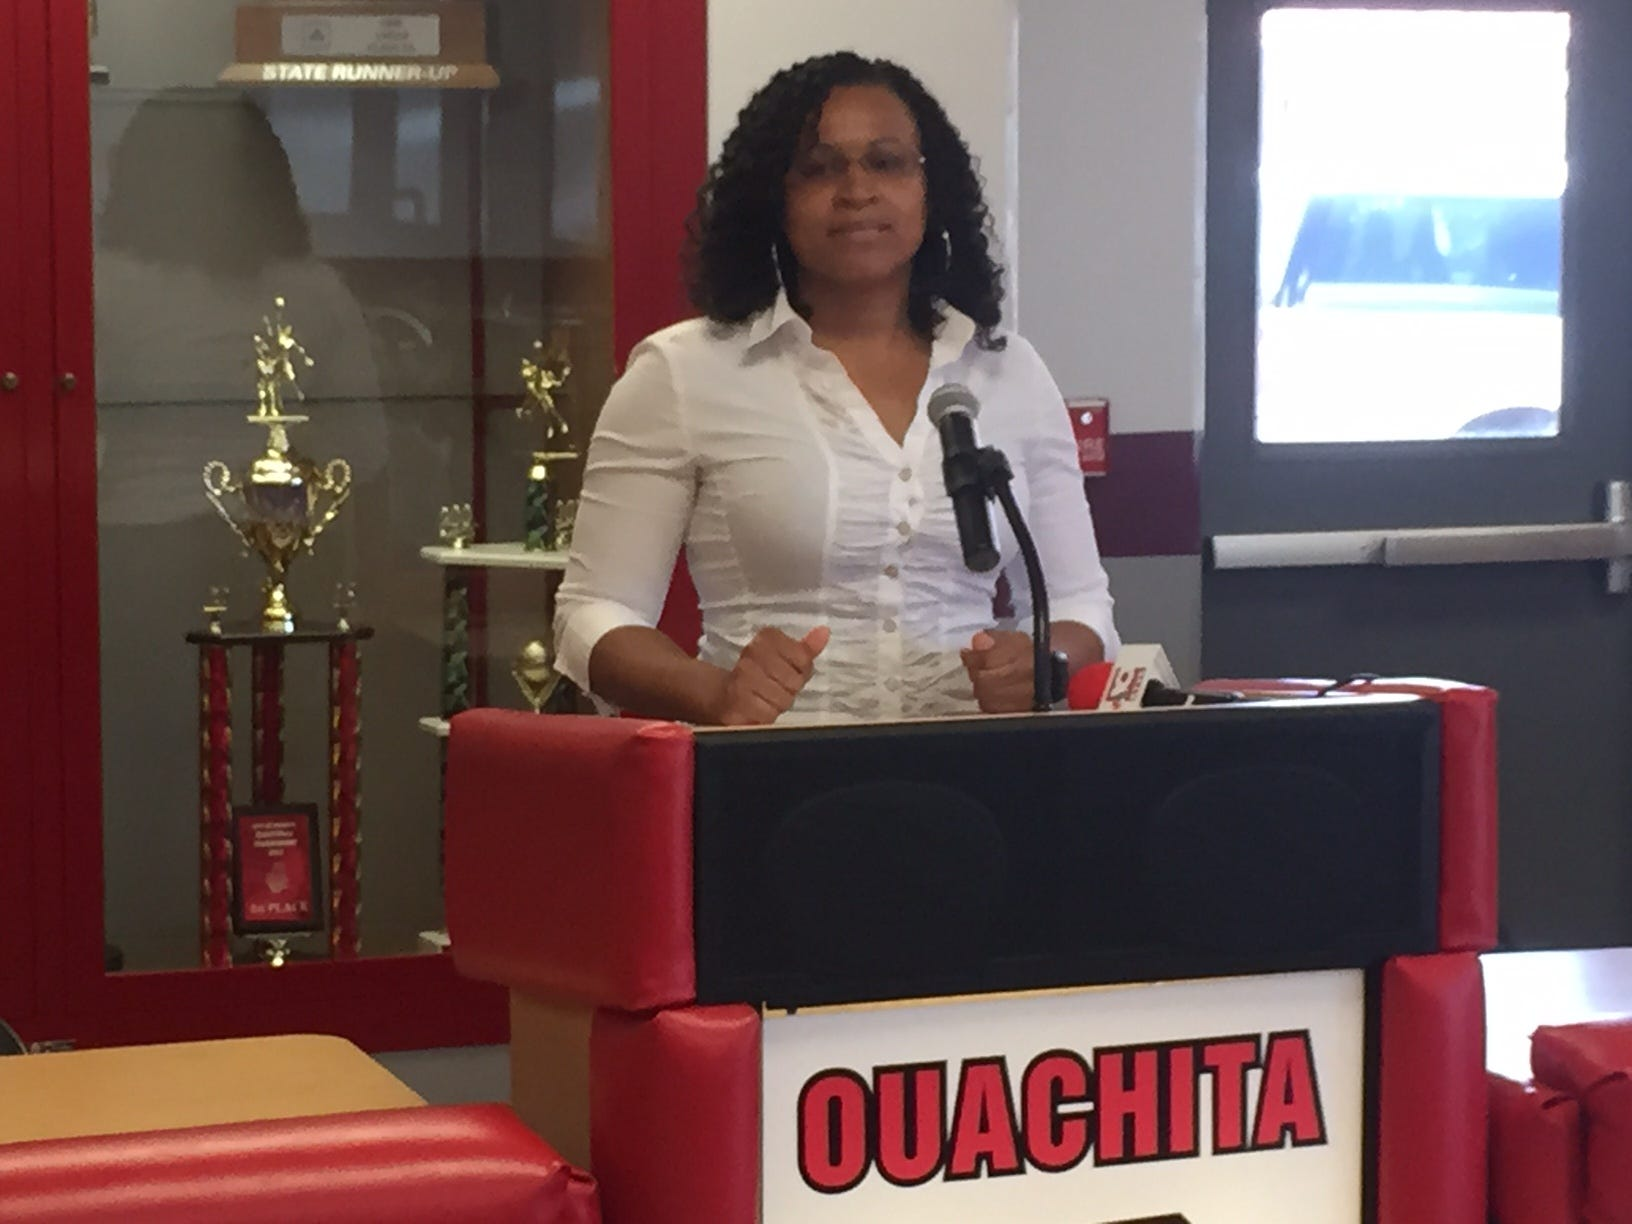 Amber Obaze-Ford was introduced as Ouachita's new girls basketball coach on Friday afternoon in the Slusher Lobby. She met with her new team afterwards.